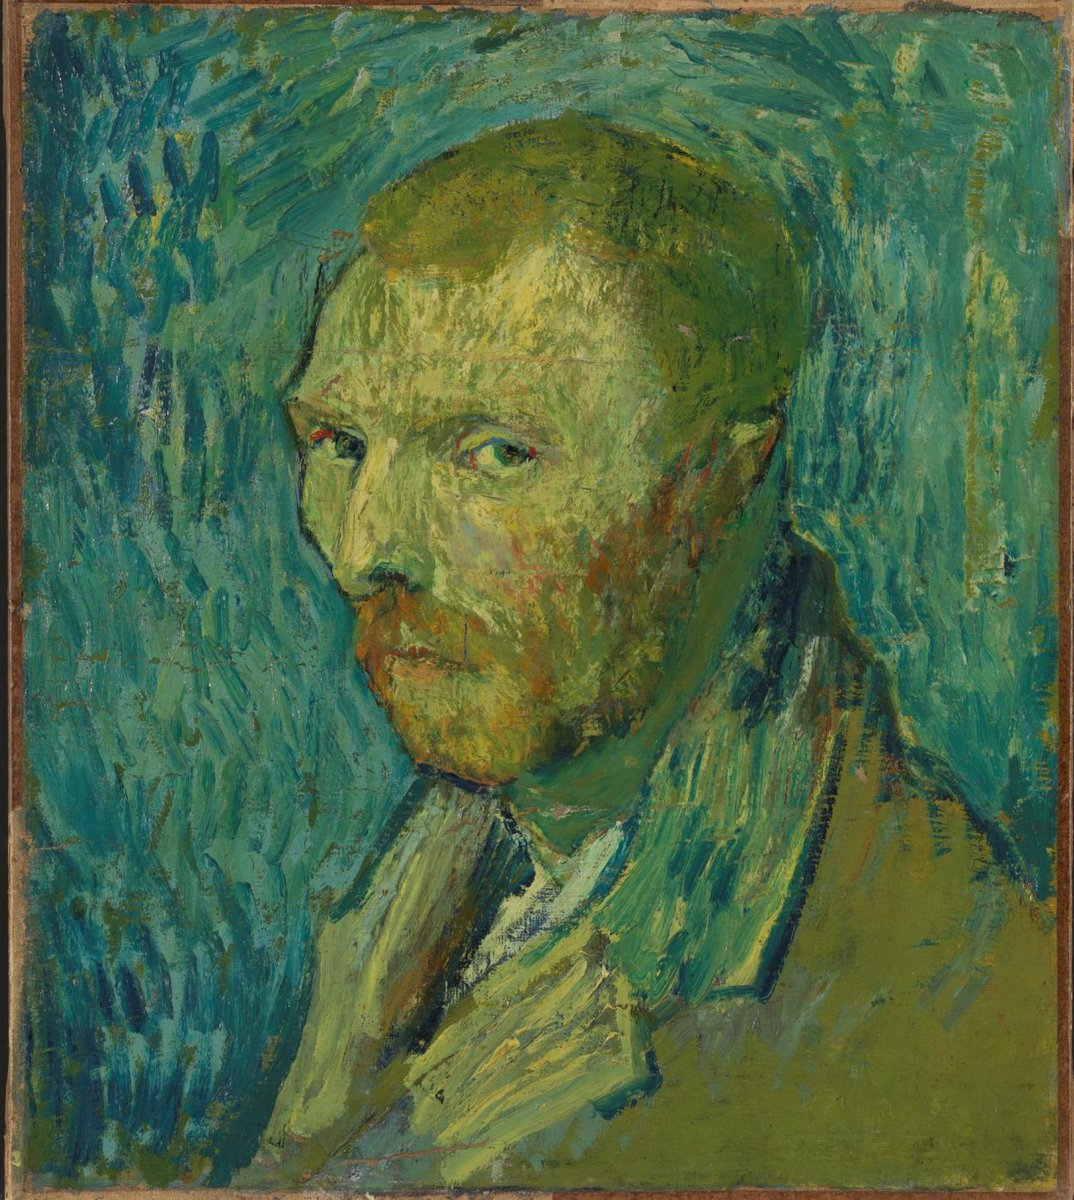 A melancholic Van Gogh self-portrait from Oslo's @nasjonalmuseet has been authenticated after much dispute, said to be his only known work whilst suffering from psychosis. Will this unlock a deeper understanding of the Dutch master's despair? |Photo: Nasjonalmuseet /Anne Hansteen <br>http://pic.twitter.com/AoQg4w0hMk